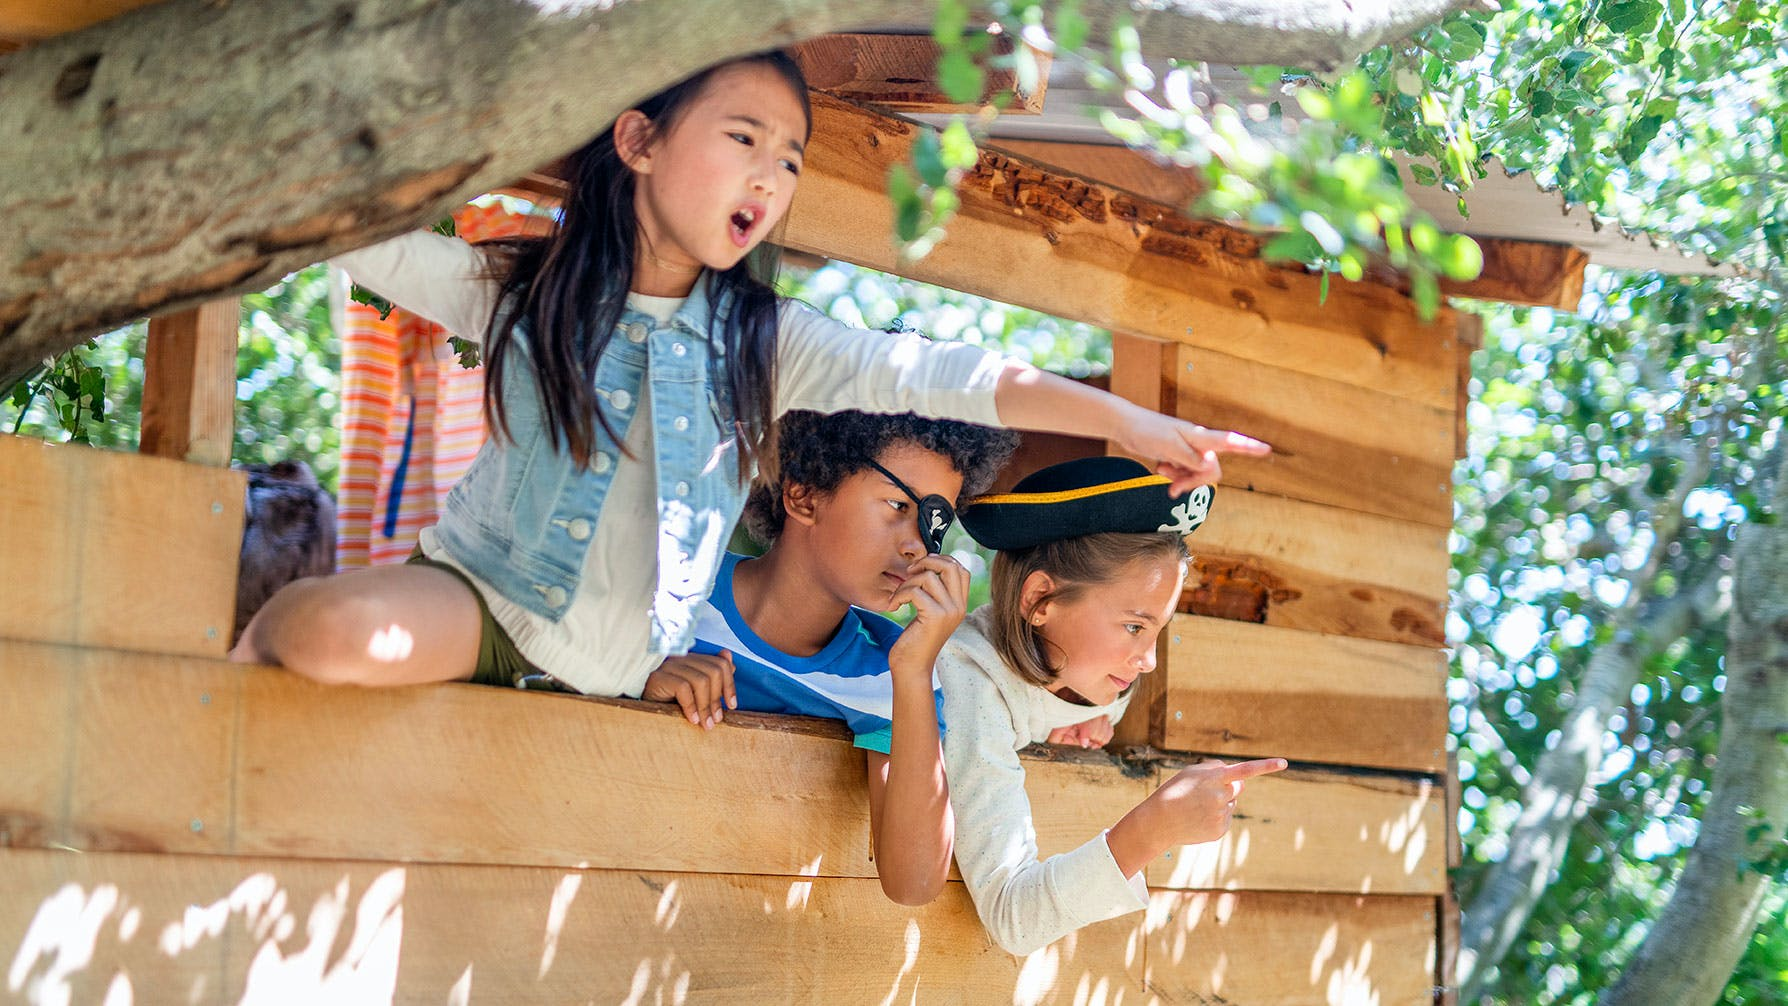 Kids playing in a treehouse outside